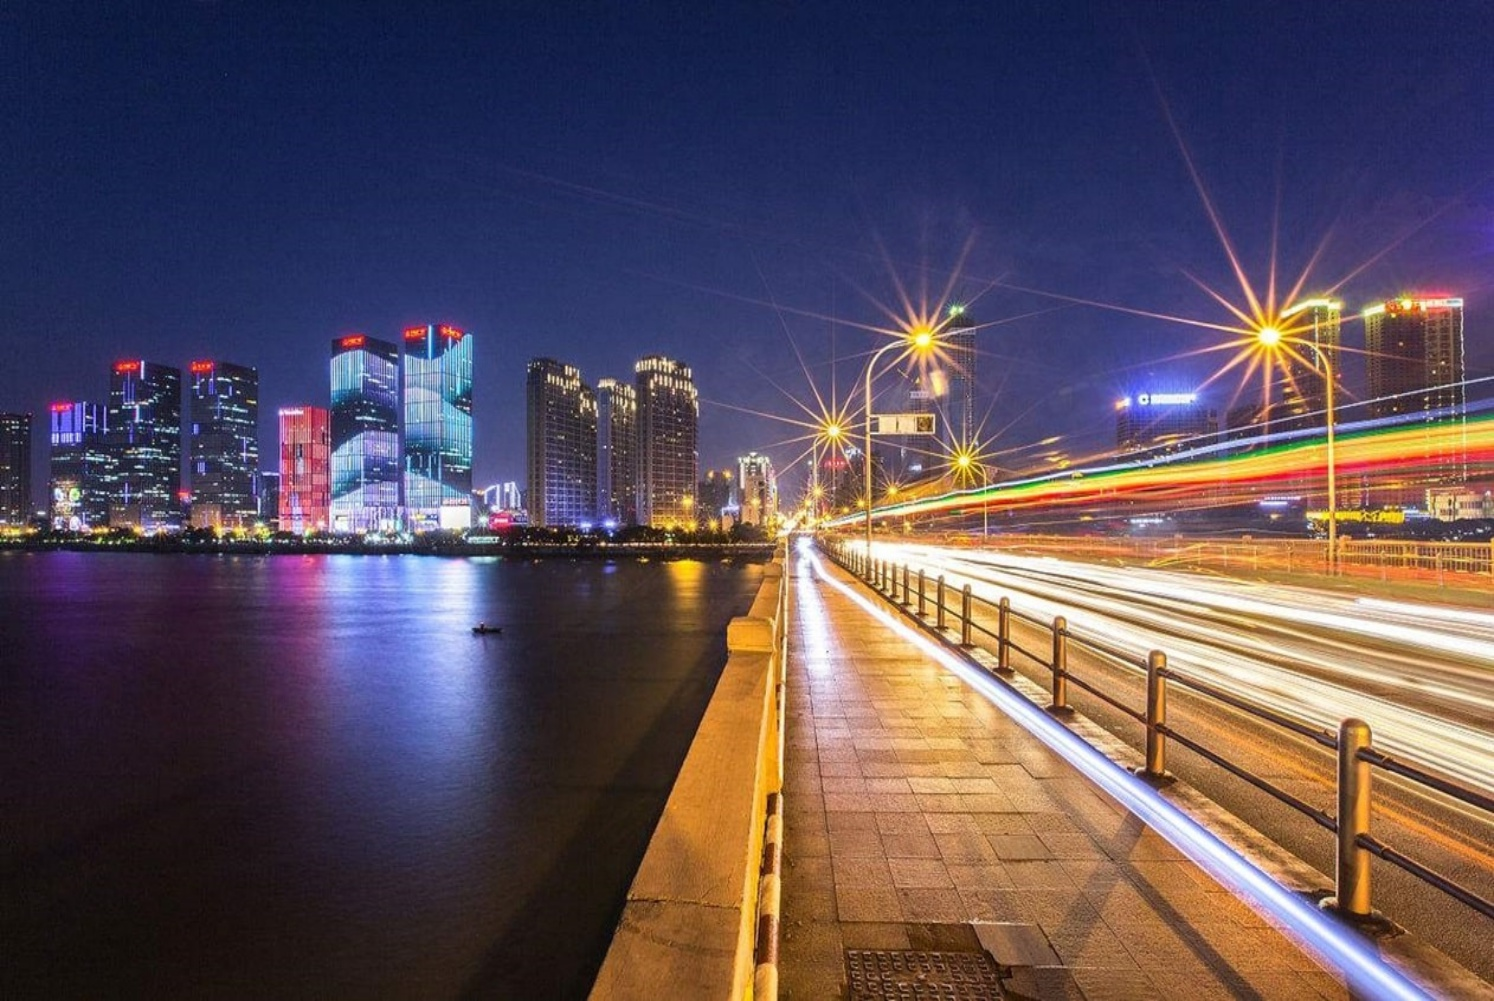 Day 5: Changsha - Welcome to Changsha, the capital of China's beautiful Hunan Province. Hunan cuisine is one of the 8 distinct cuisines across China, renowned for its love of chillies. Tantalise your taste buds as you explore this fascinating city.